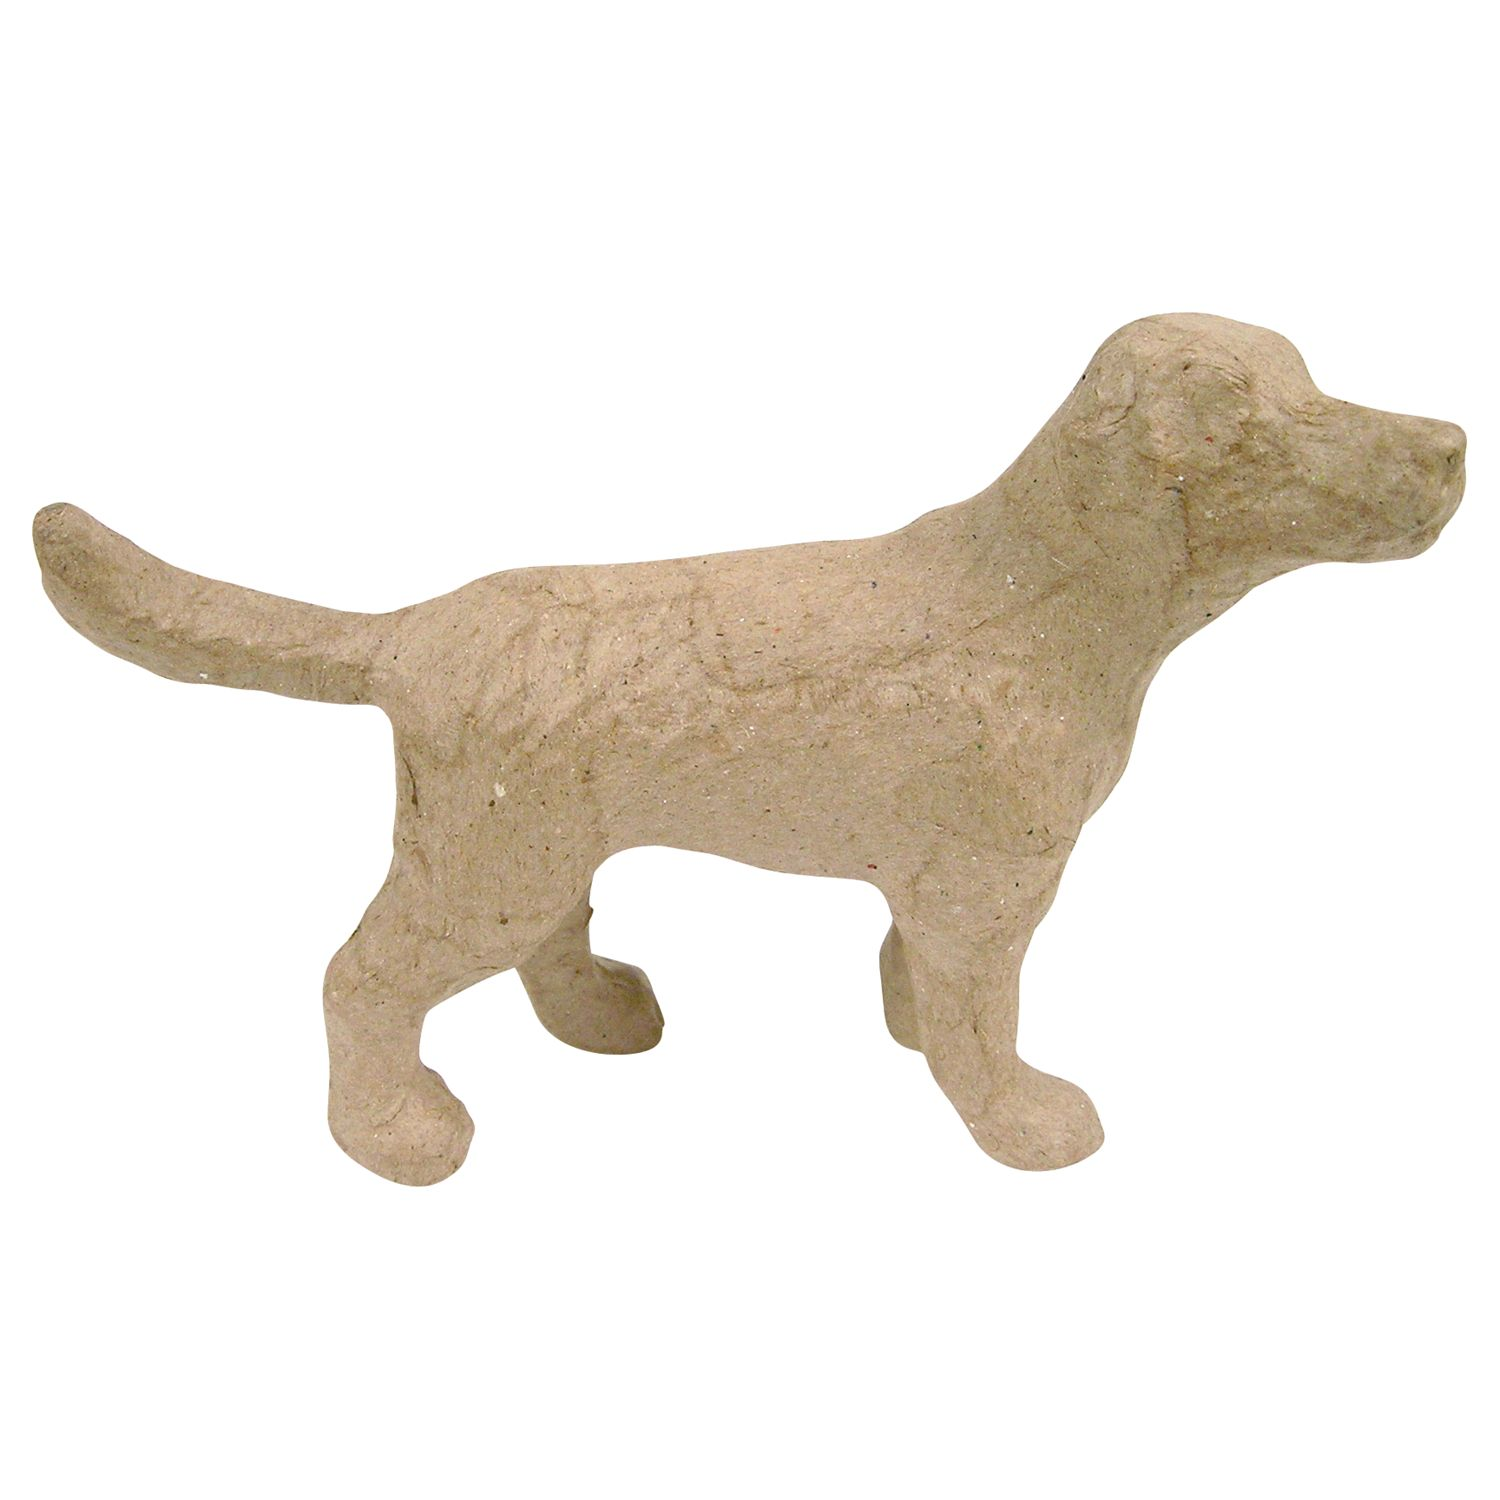 Decopatch Ap585 Dog Model, Extra Small